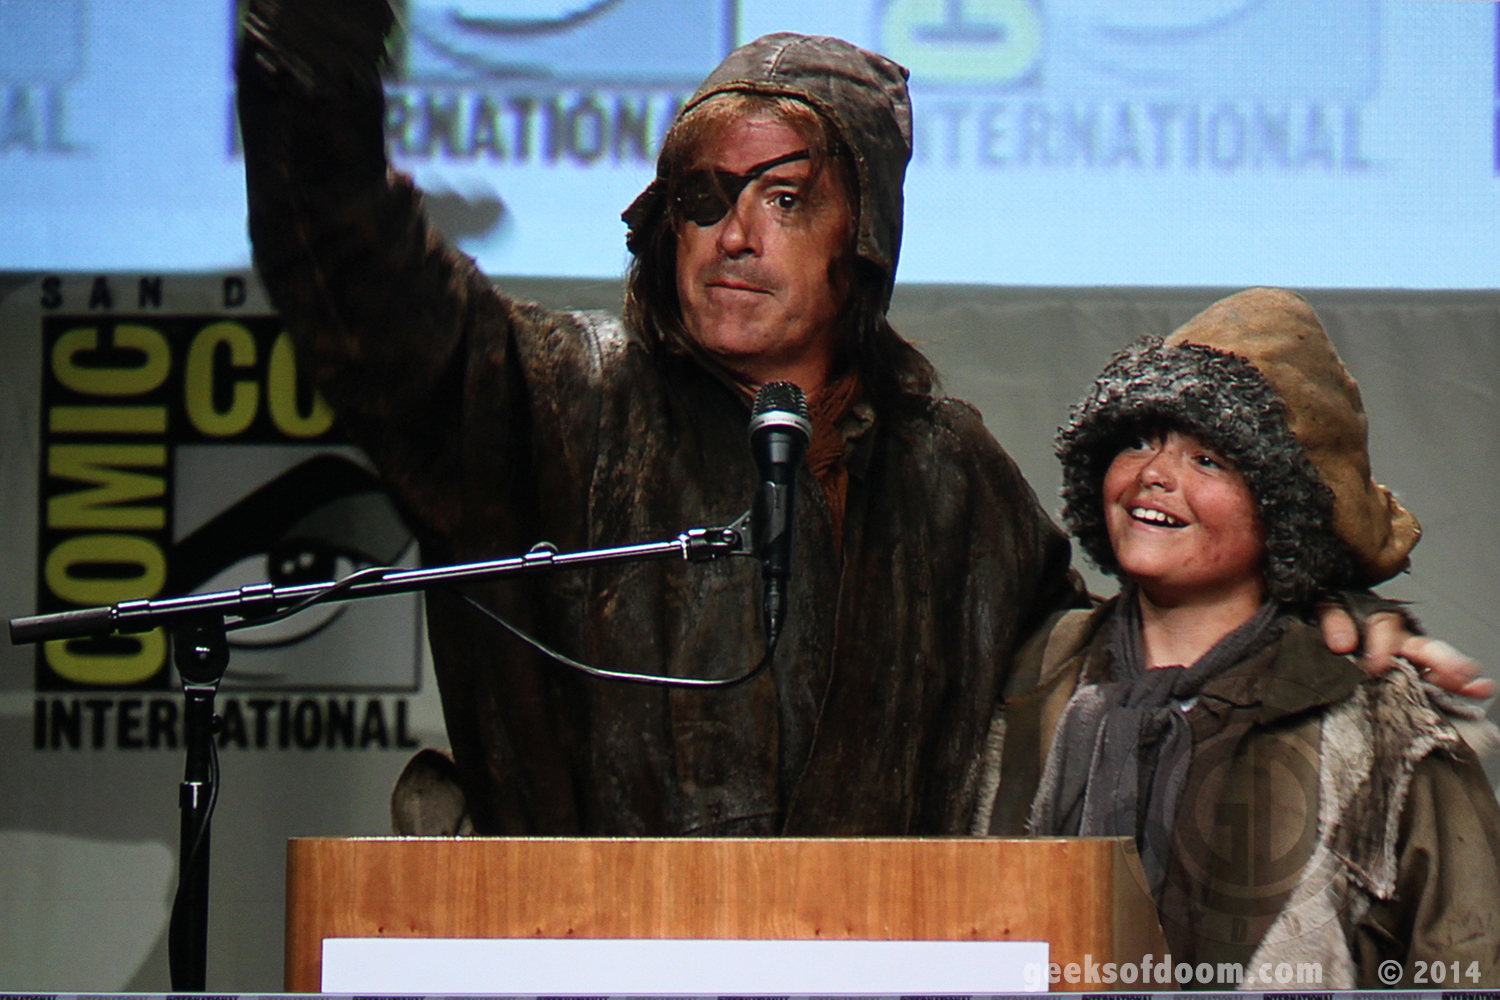 the-hobbit-battle-of-five-armies-stephen-colbert-and-son-01